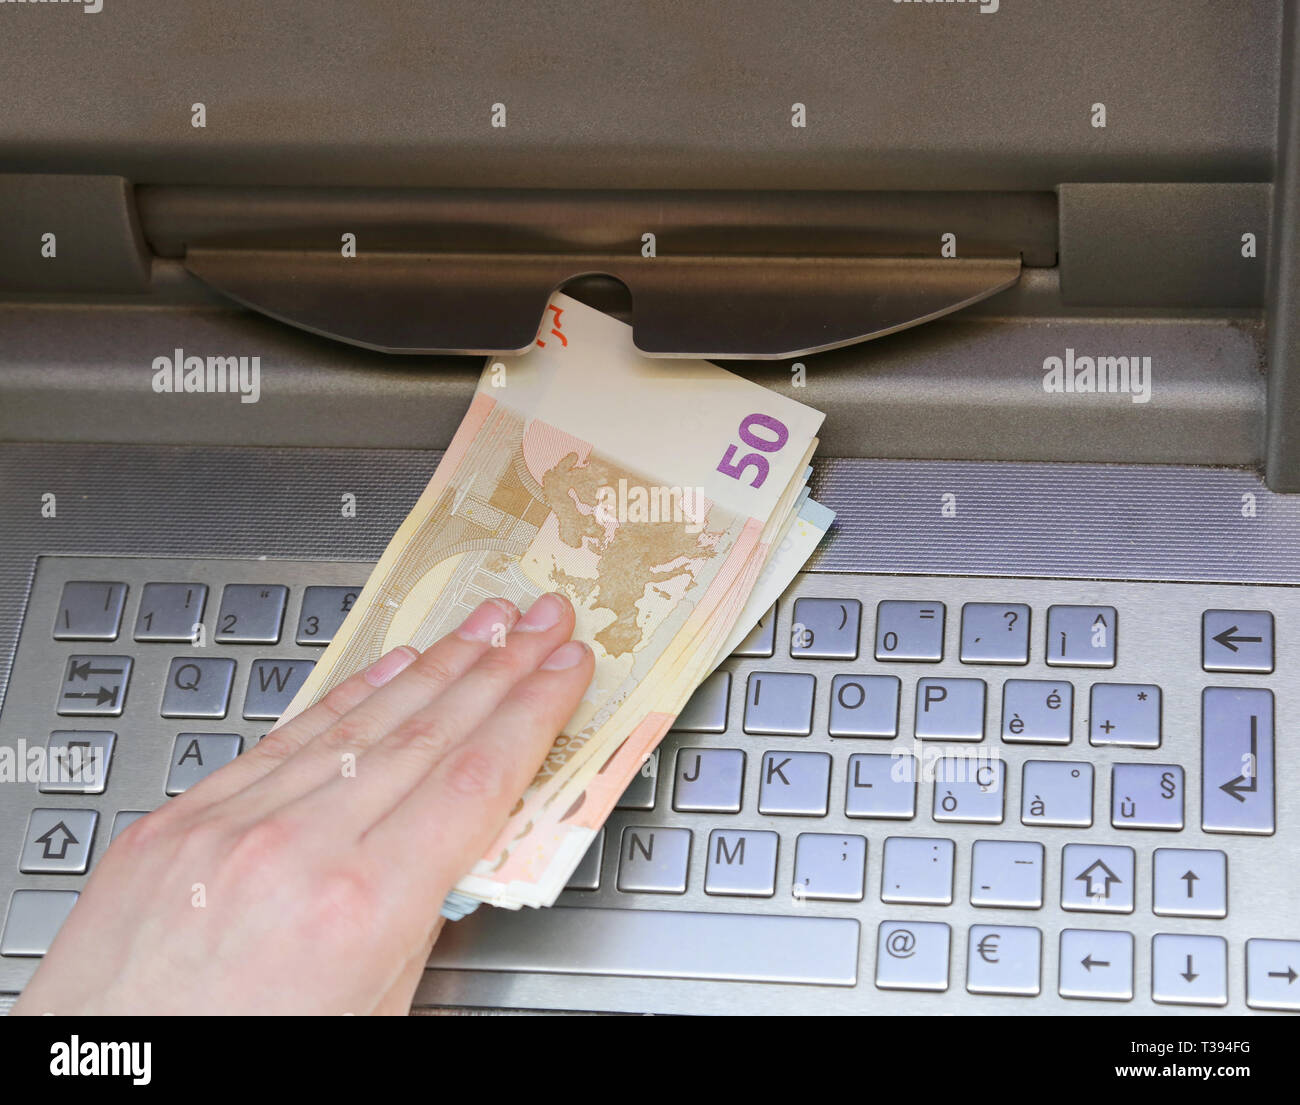 hand that withdraws banknotes of 50 euros from an ATM of a European bank - Stock Image